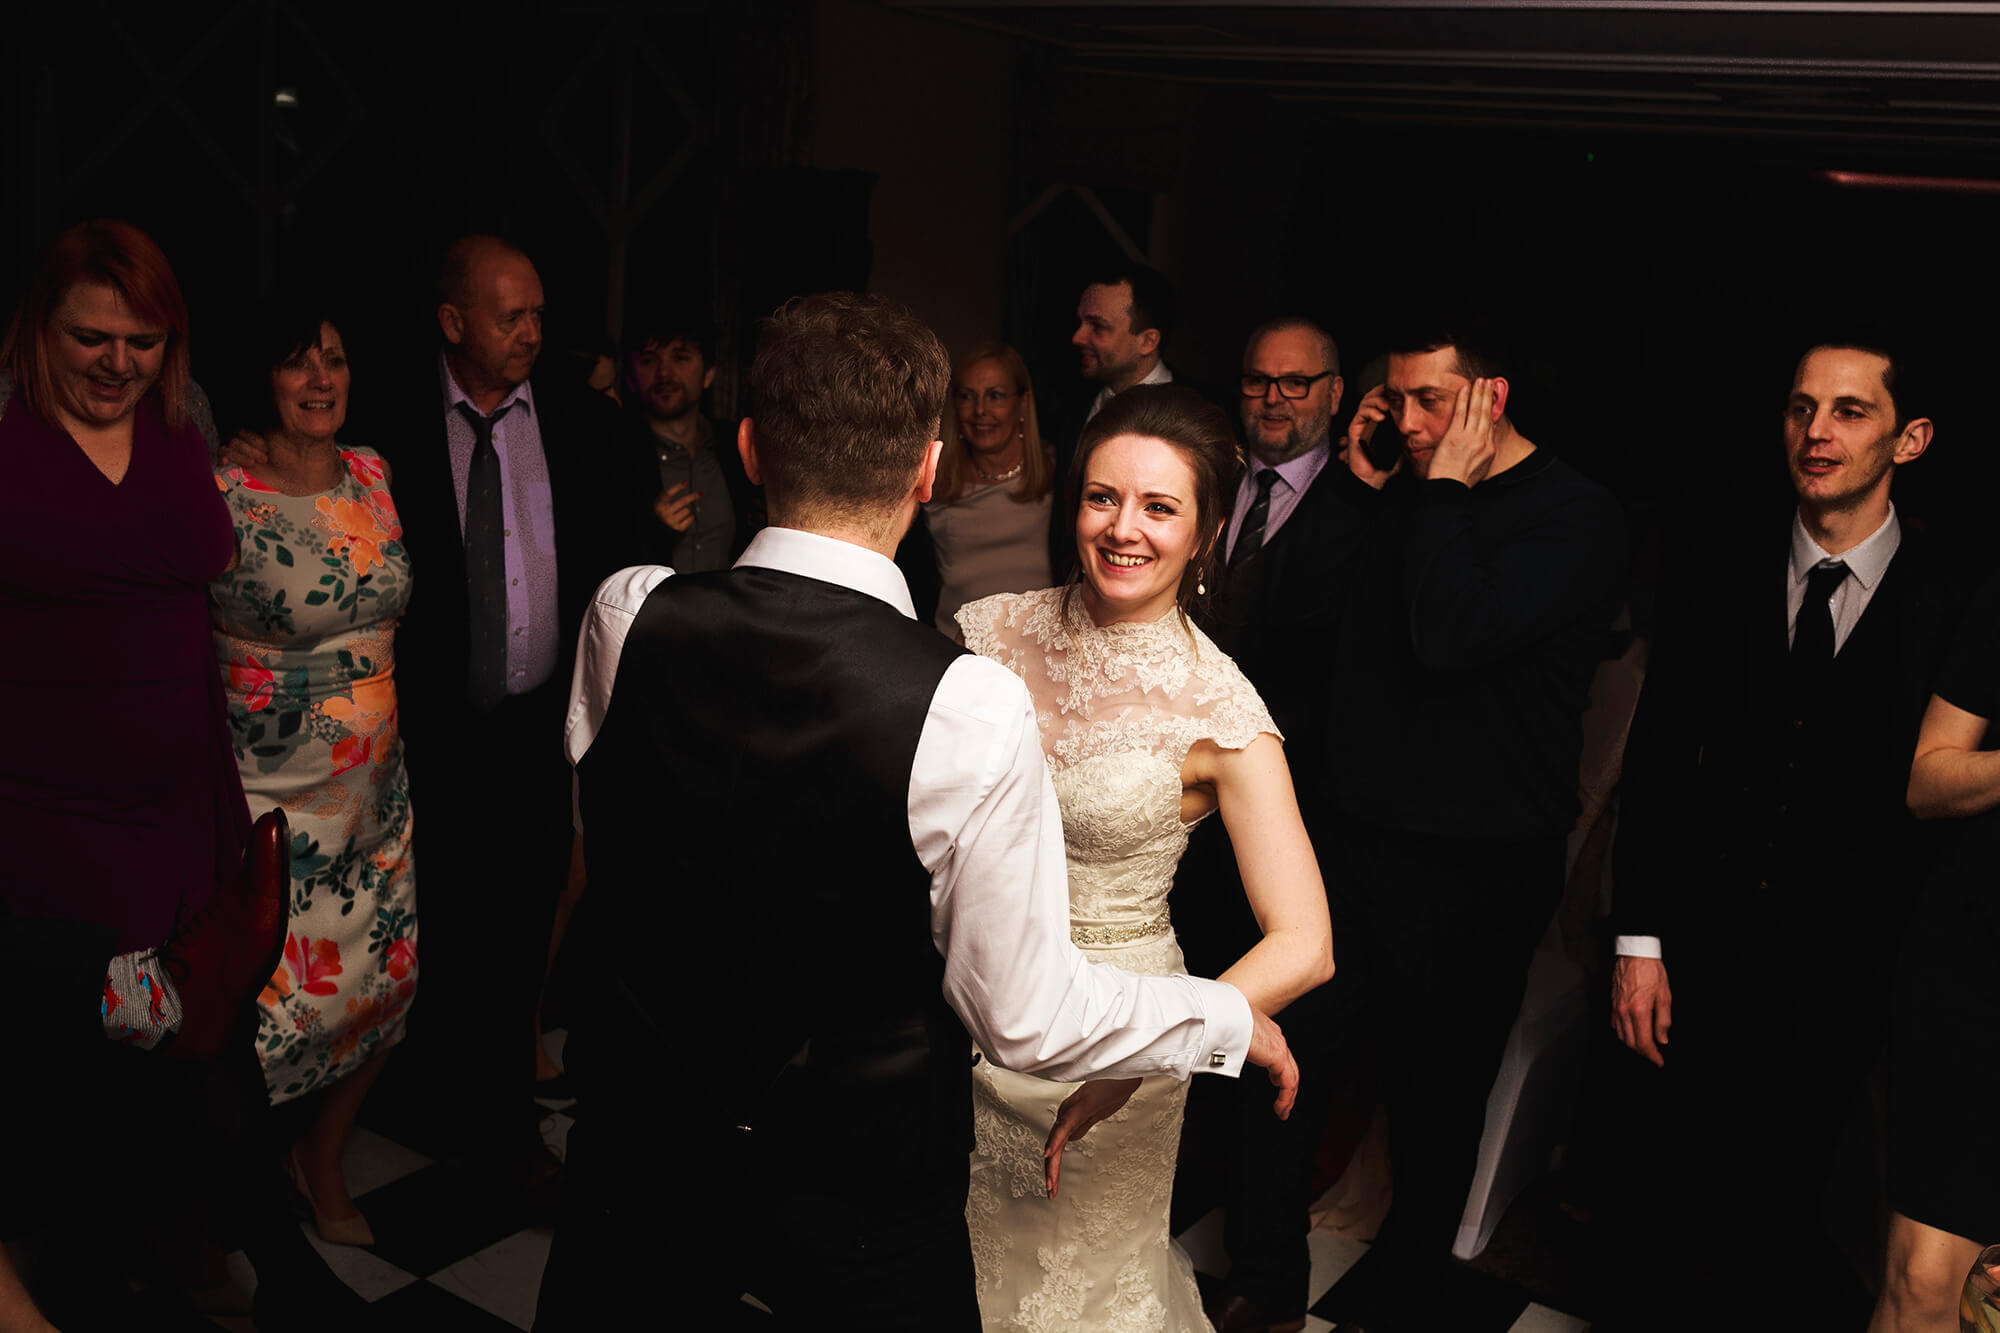 happy bride dancing with her groom in Cheshire